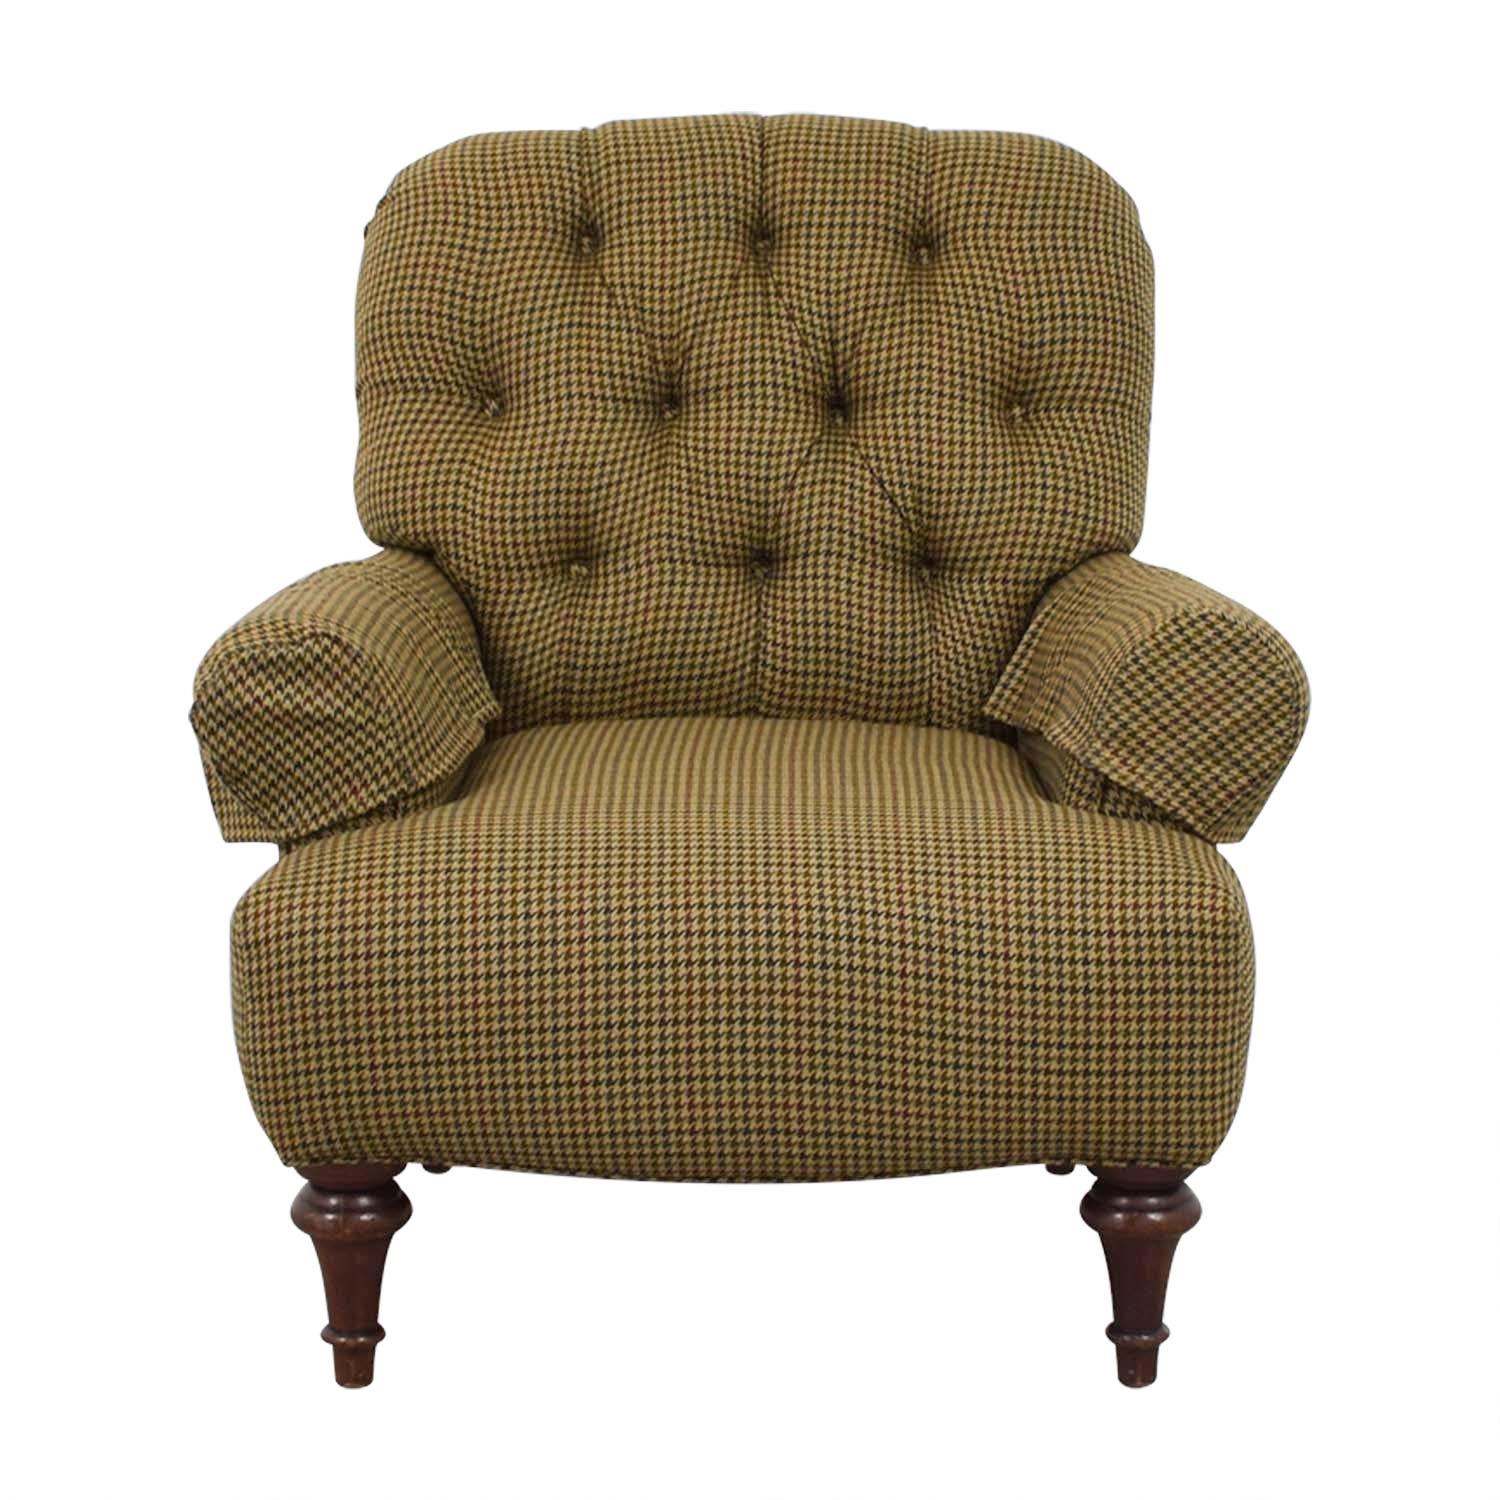 Designer Houndstooth Tufted Accent Chair nyc